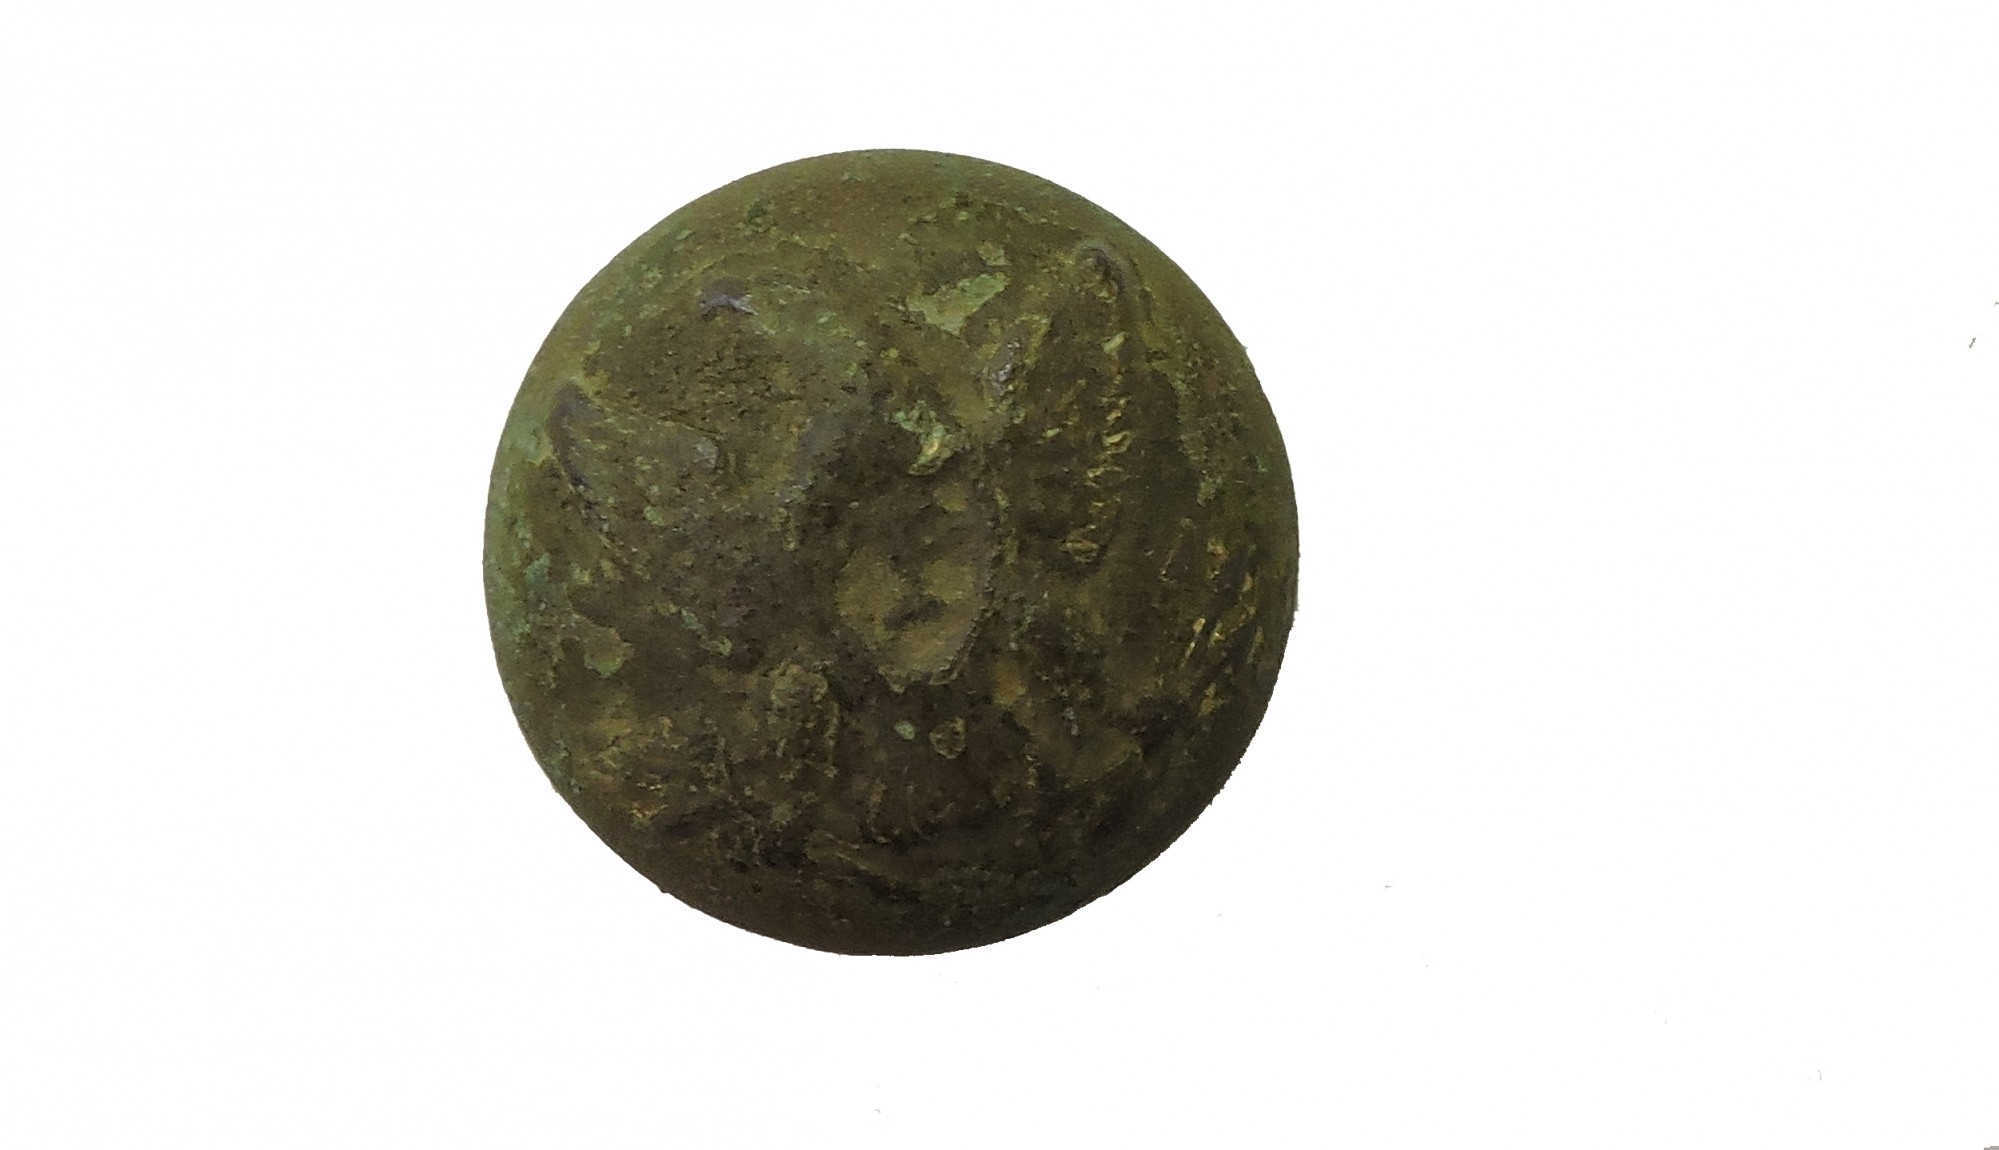 "US INFANTRY ""I' OFFICER'S JACKET BUTTON FOUND EAST OF THE STONE WALL IN THE HISTORIC WHEATFIELD AT GETTYSBURG"